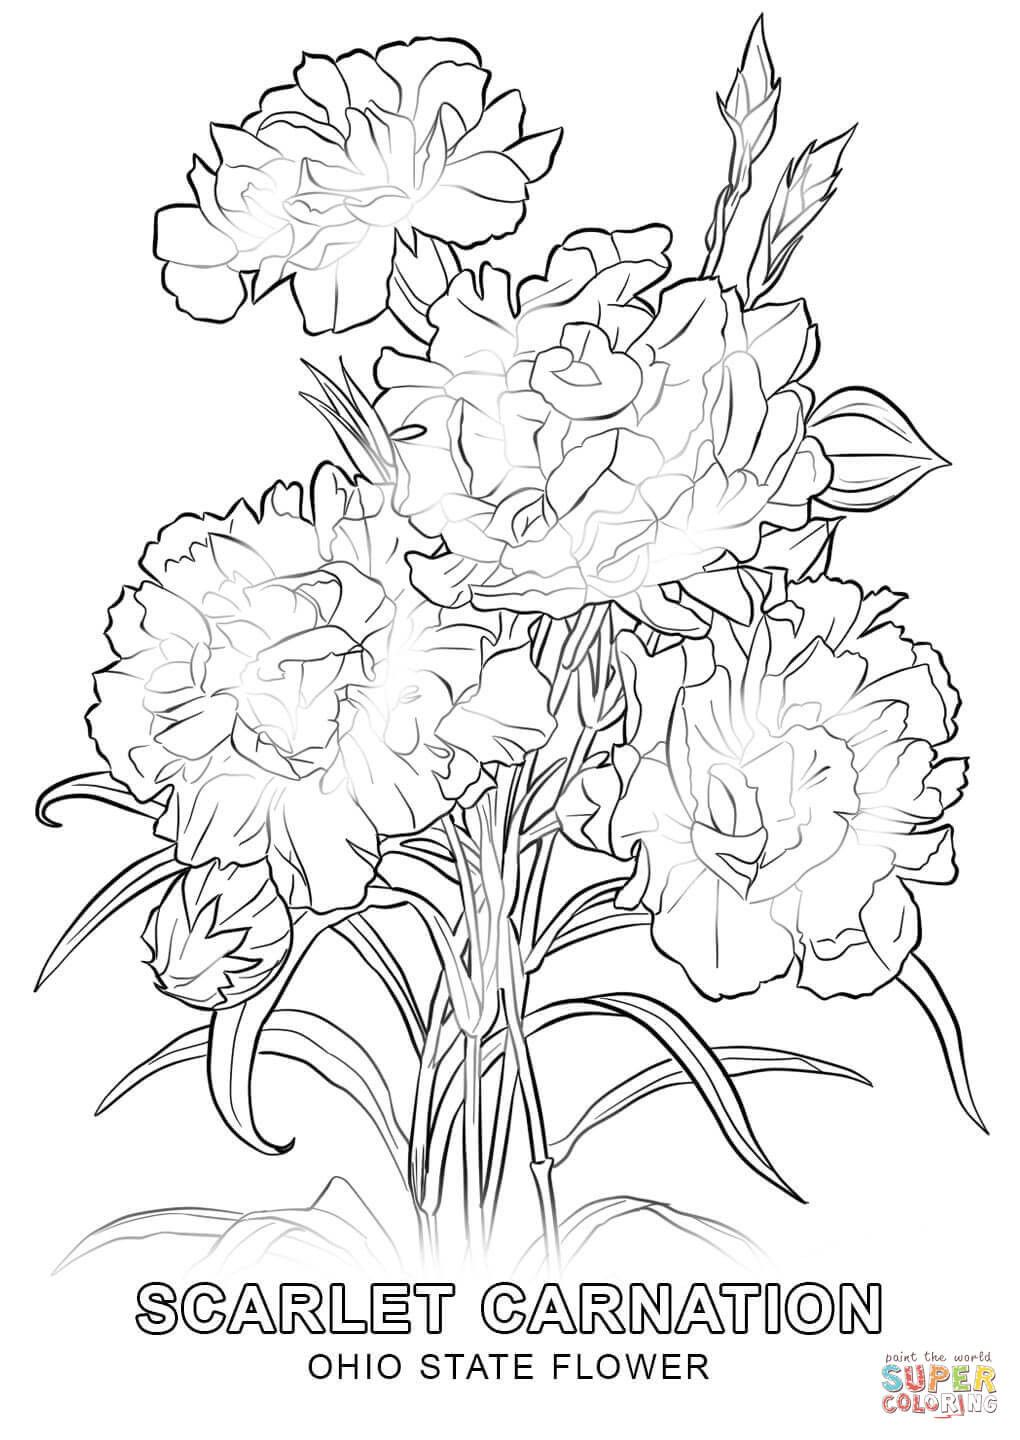 Montana State Flower Coloring Page Youngandtae Com In 2020 Flower Coloring Pages Coloring Pages Tree Coloring Page